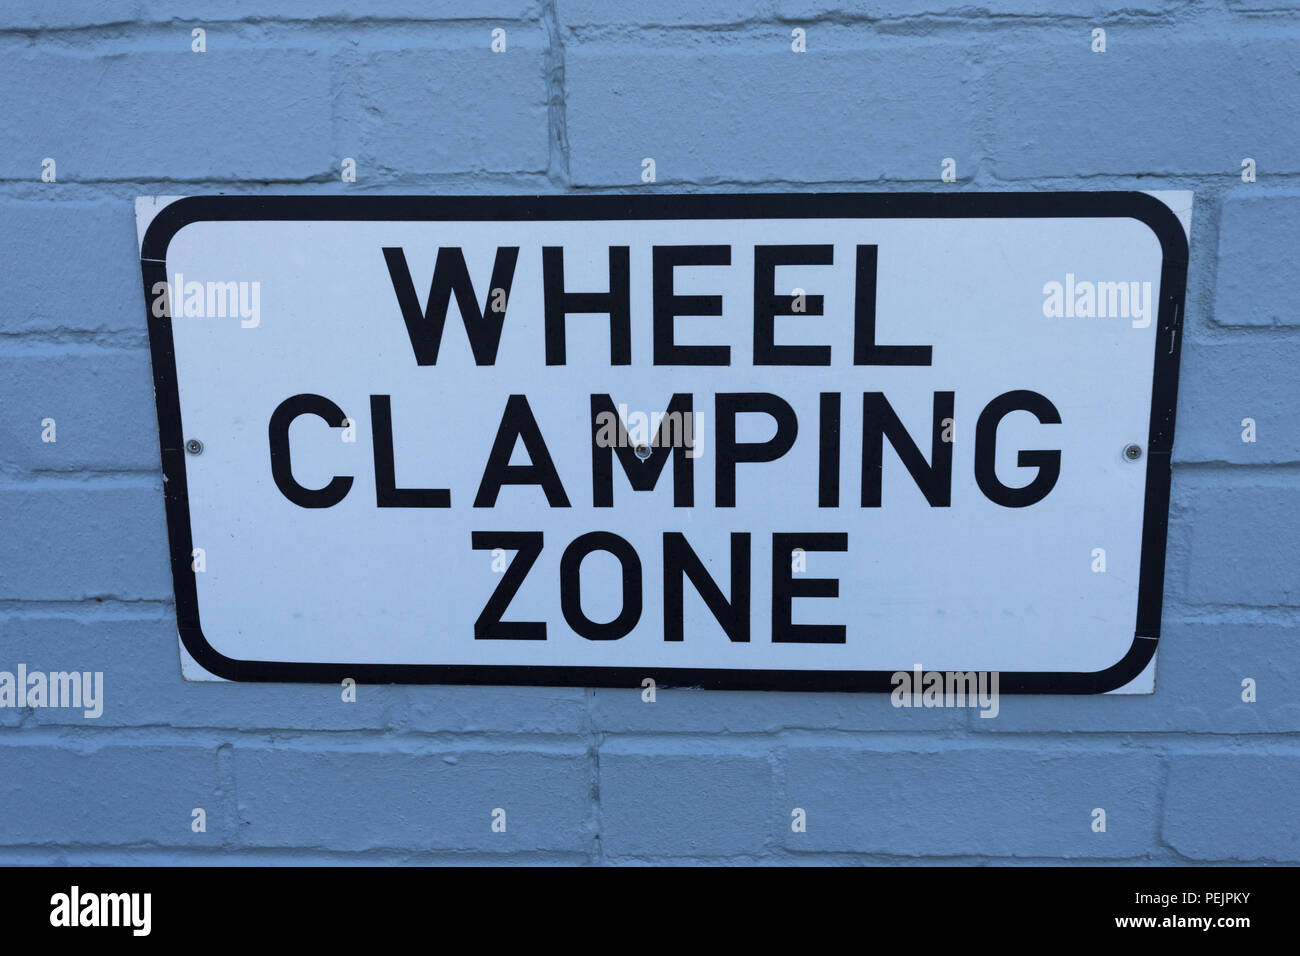 sign for wheel clamping zone on wall in city - Stock Image